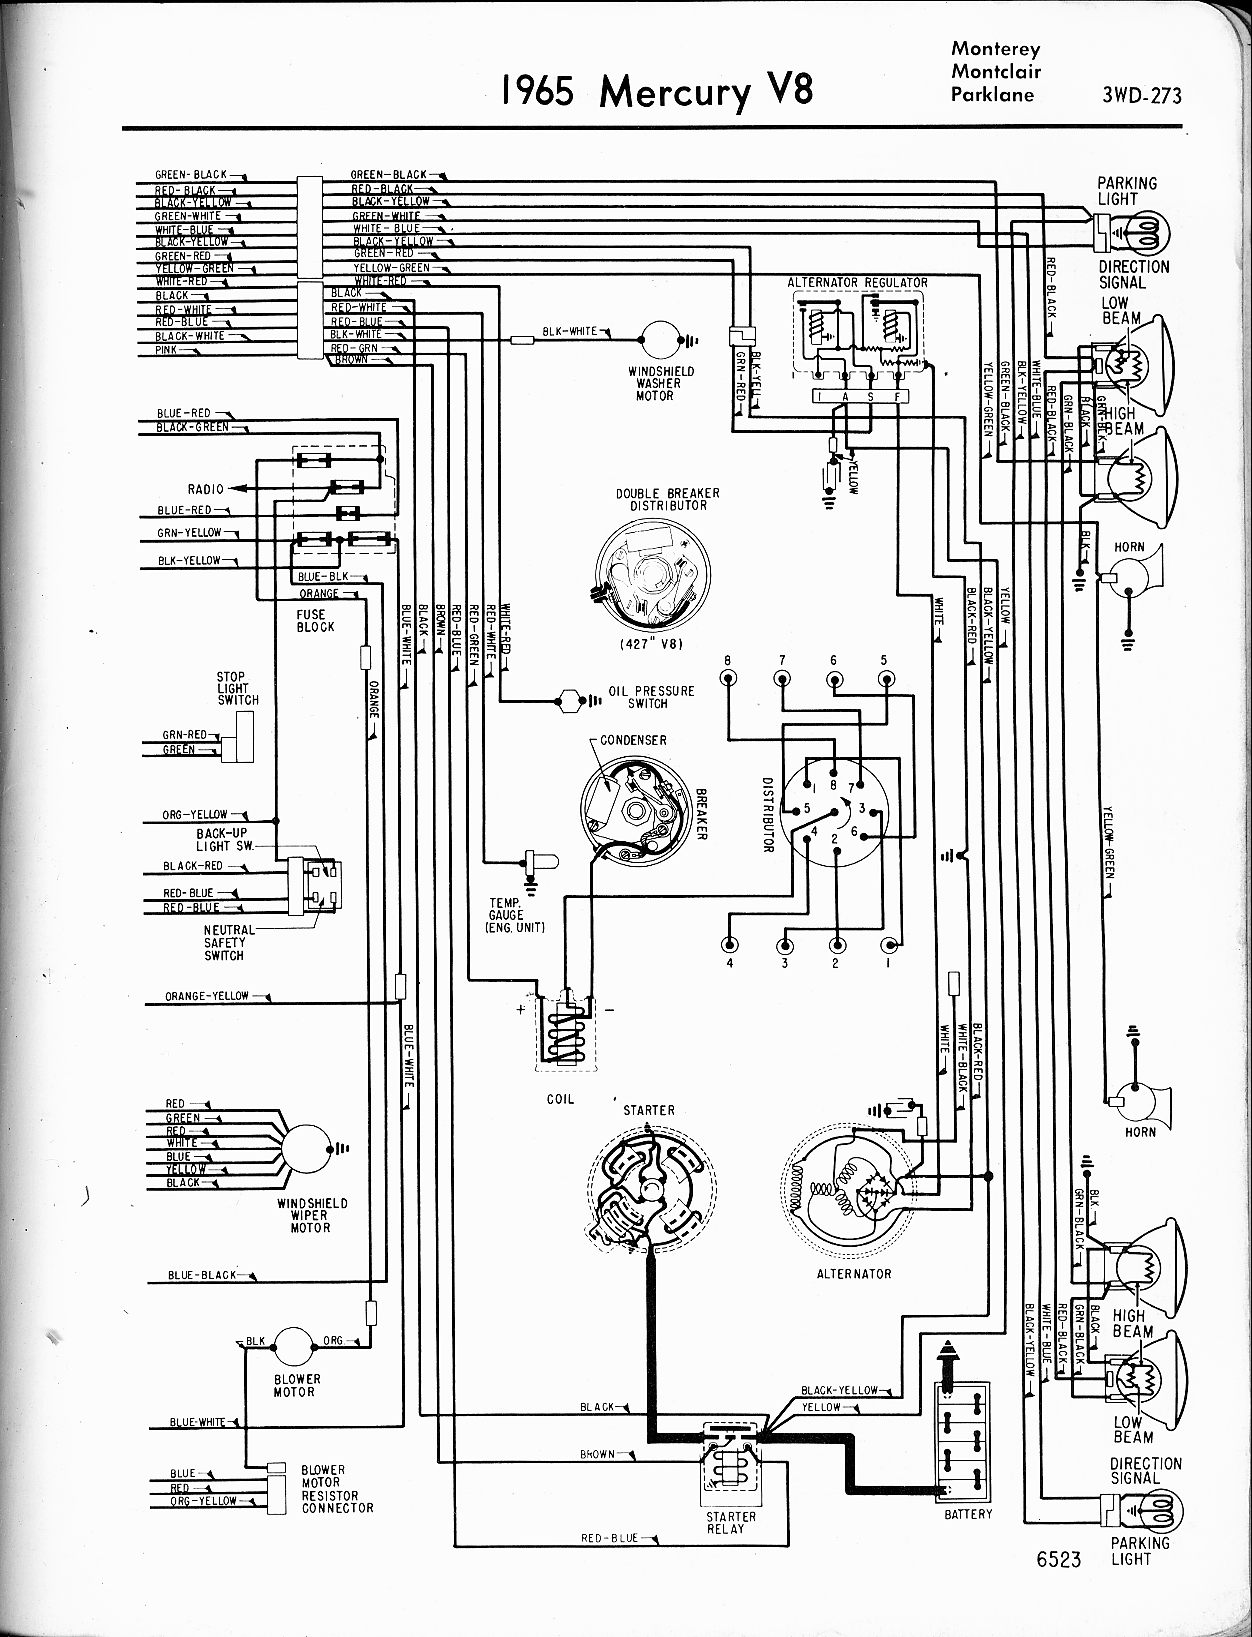 MWire5765 273 mercury wiring diagrams the old car manual project 1999 mercury cougar wiring diagram at bayanpartner.co